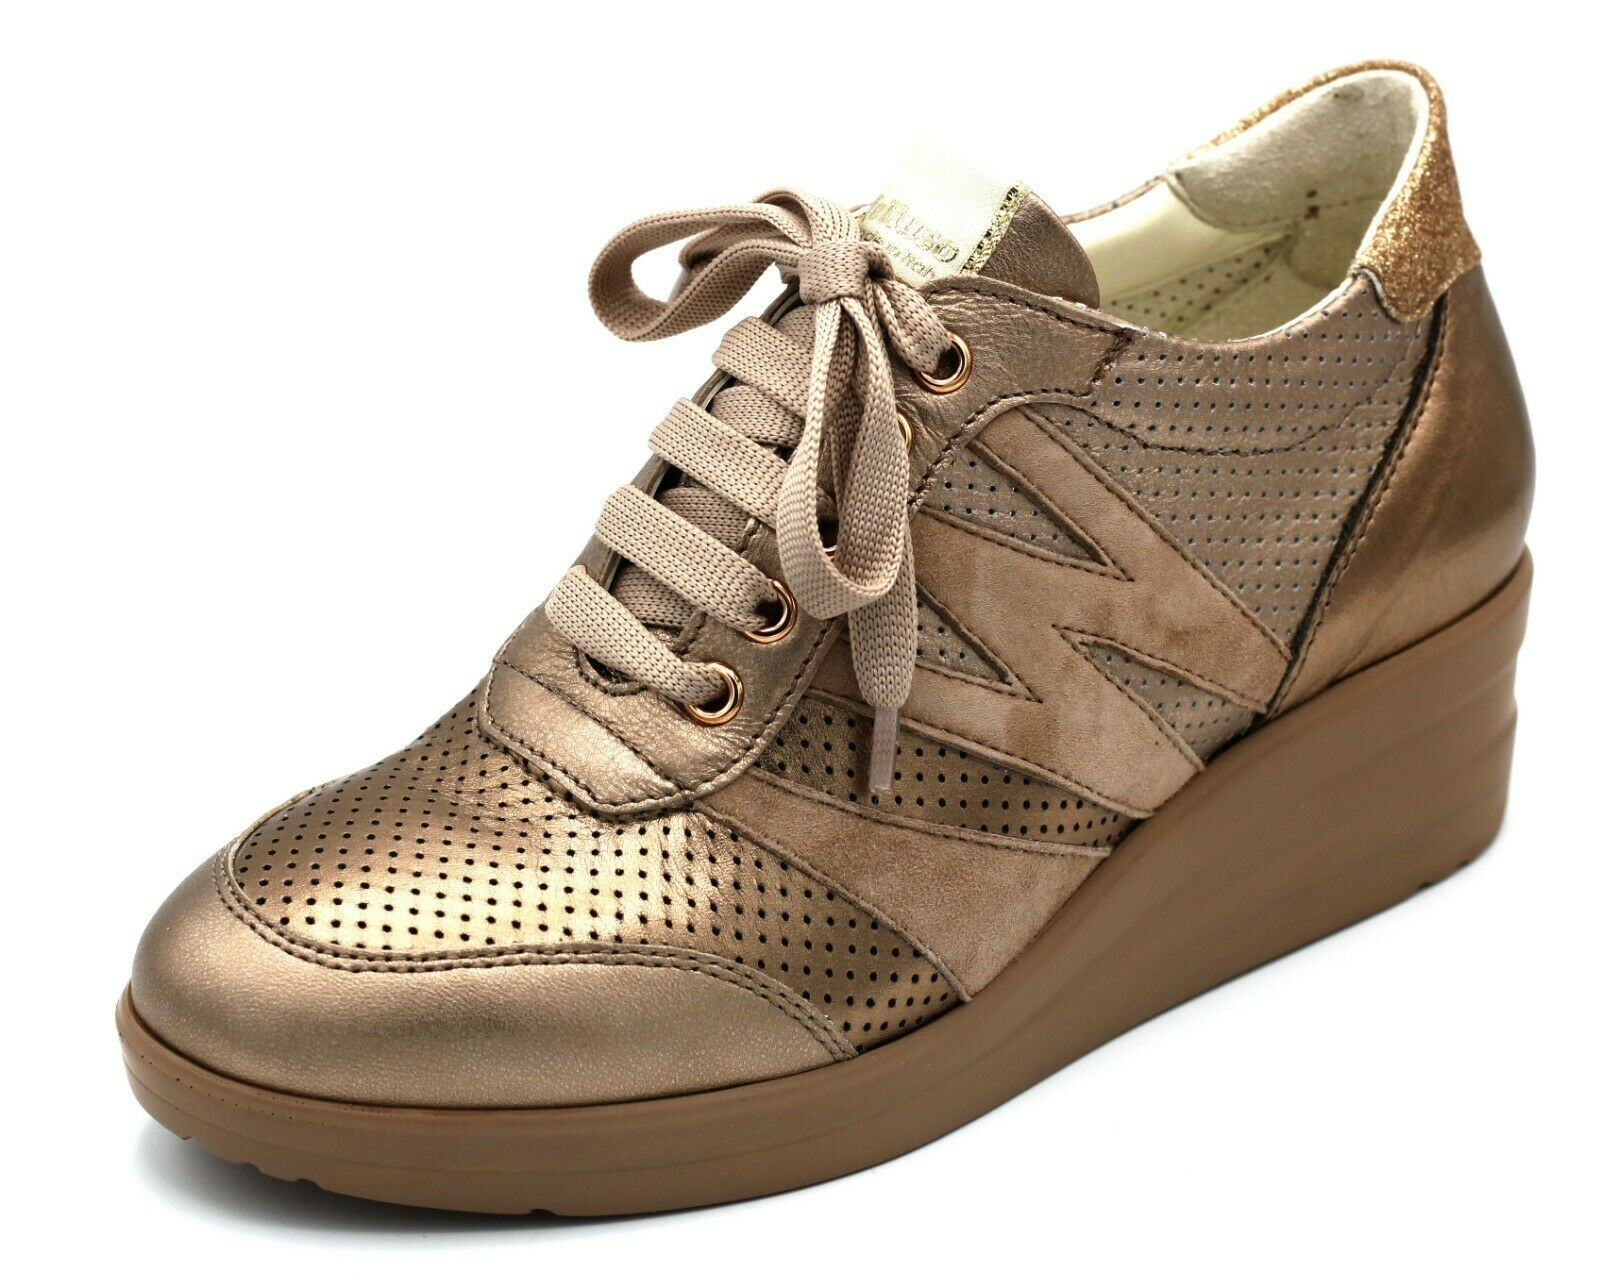 R20136 MELLUSO Turnchaussures IN PELLE CouleurE CANNELLA BRONZO  MODA COMODA n. 39